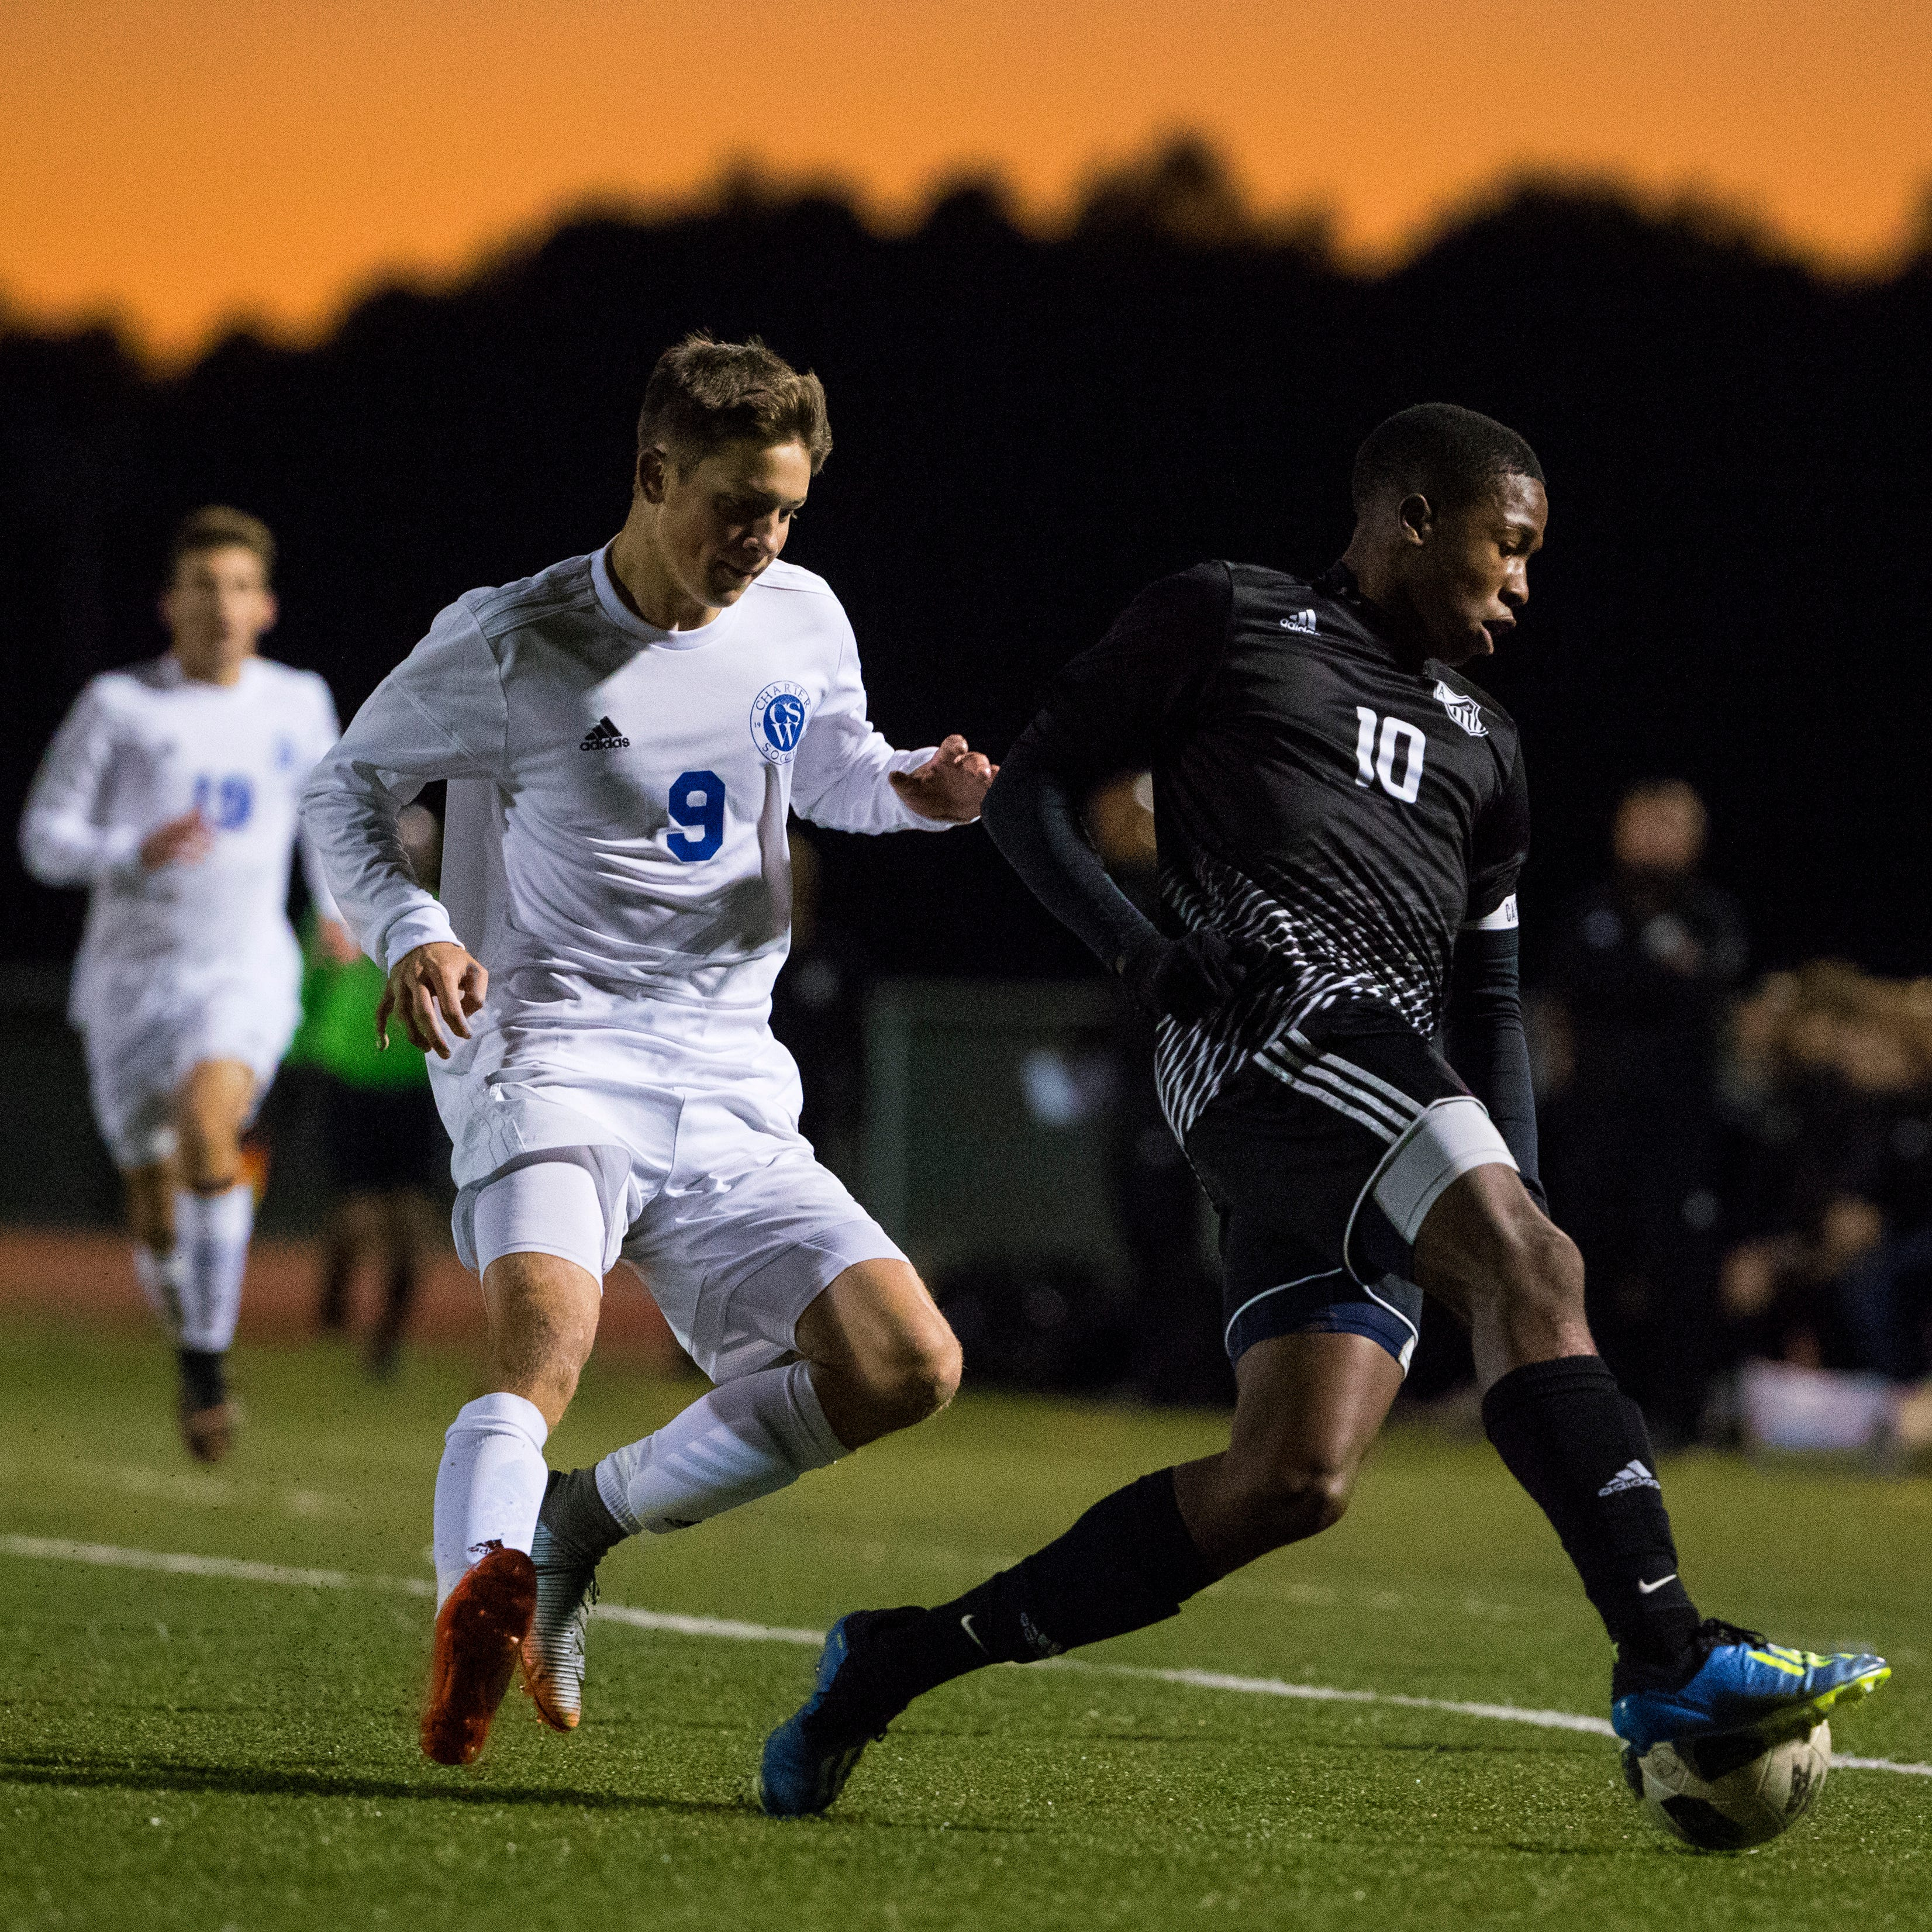 DIAA state tournament scores and schedules